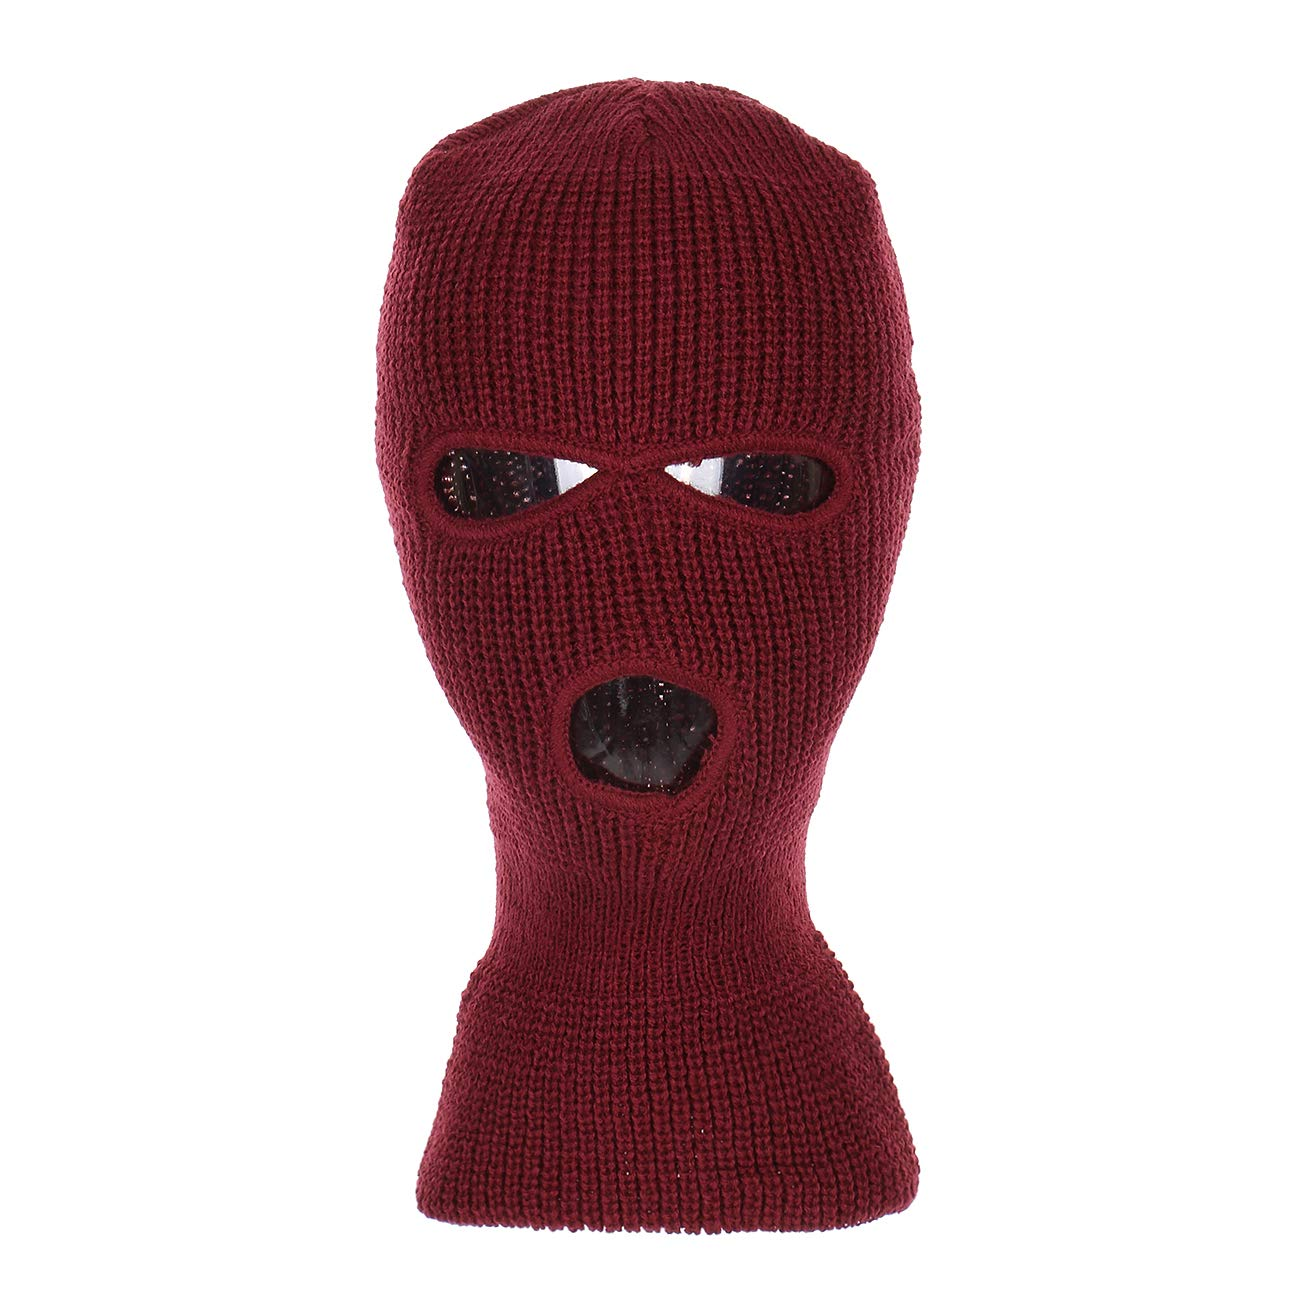 6cf02ca3d09 Knitted 3-Hole Full Face Cover Ski Mask at Amazon Men s Clothing store